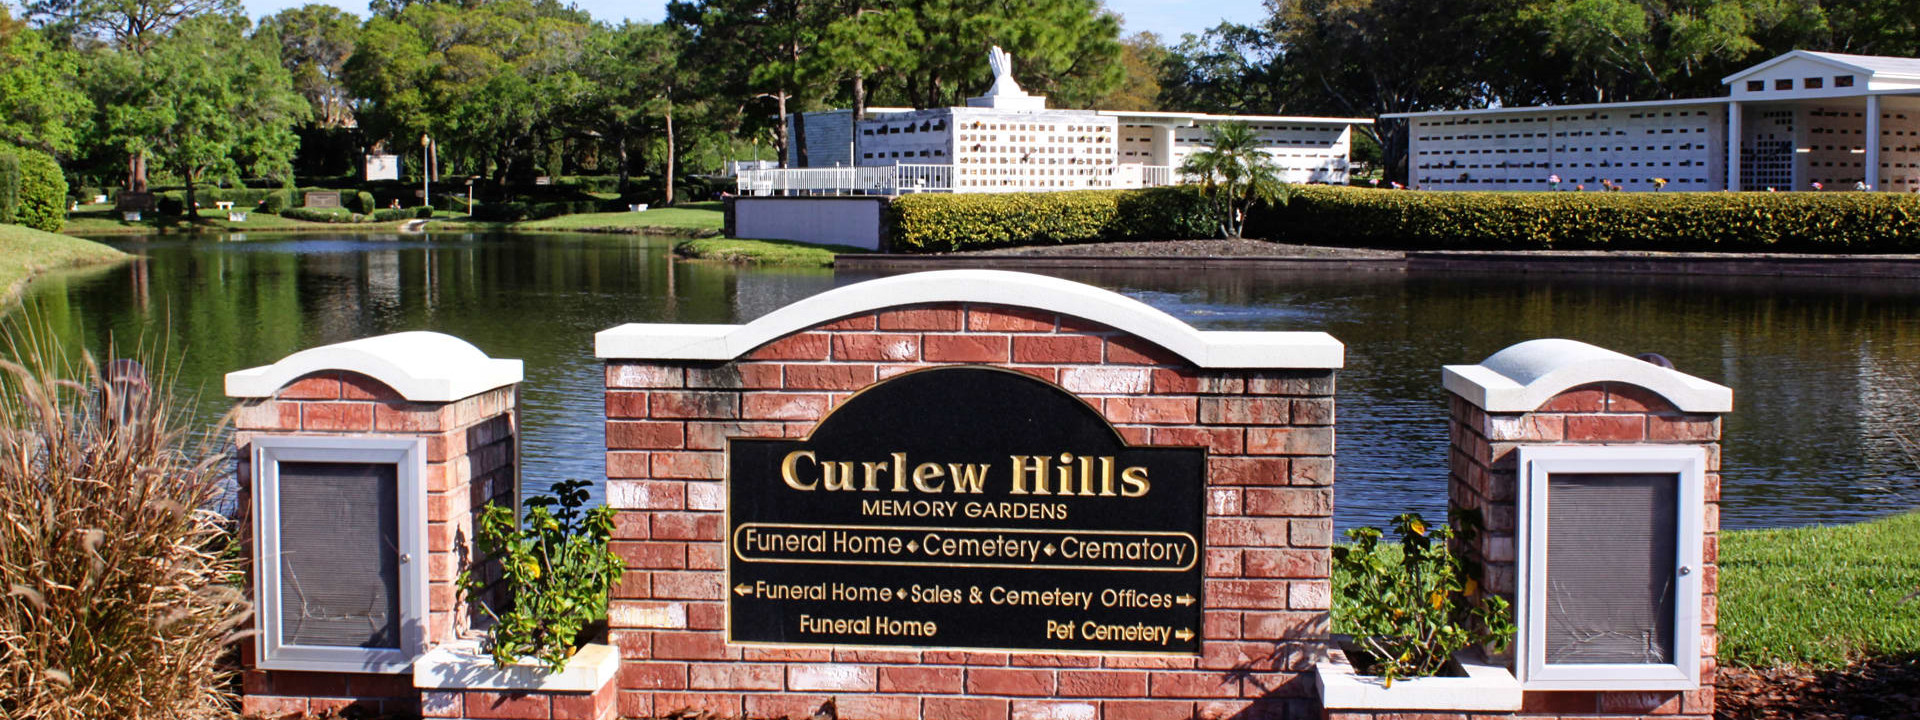 Contact Us | Curlew Hills Memory Gardens